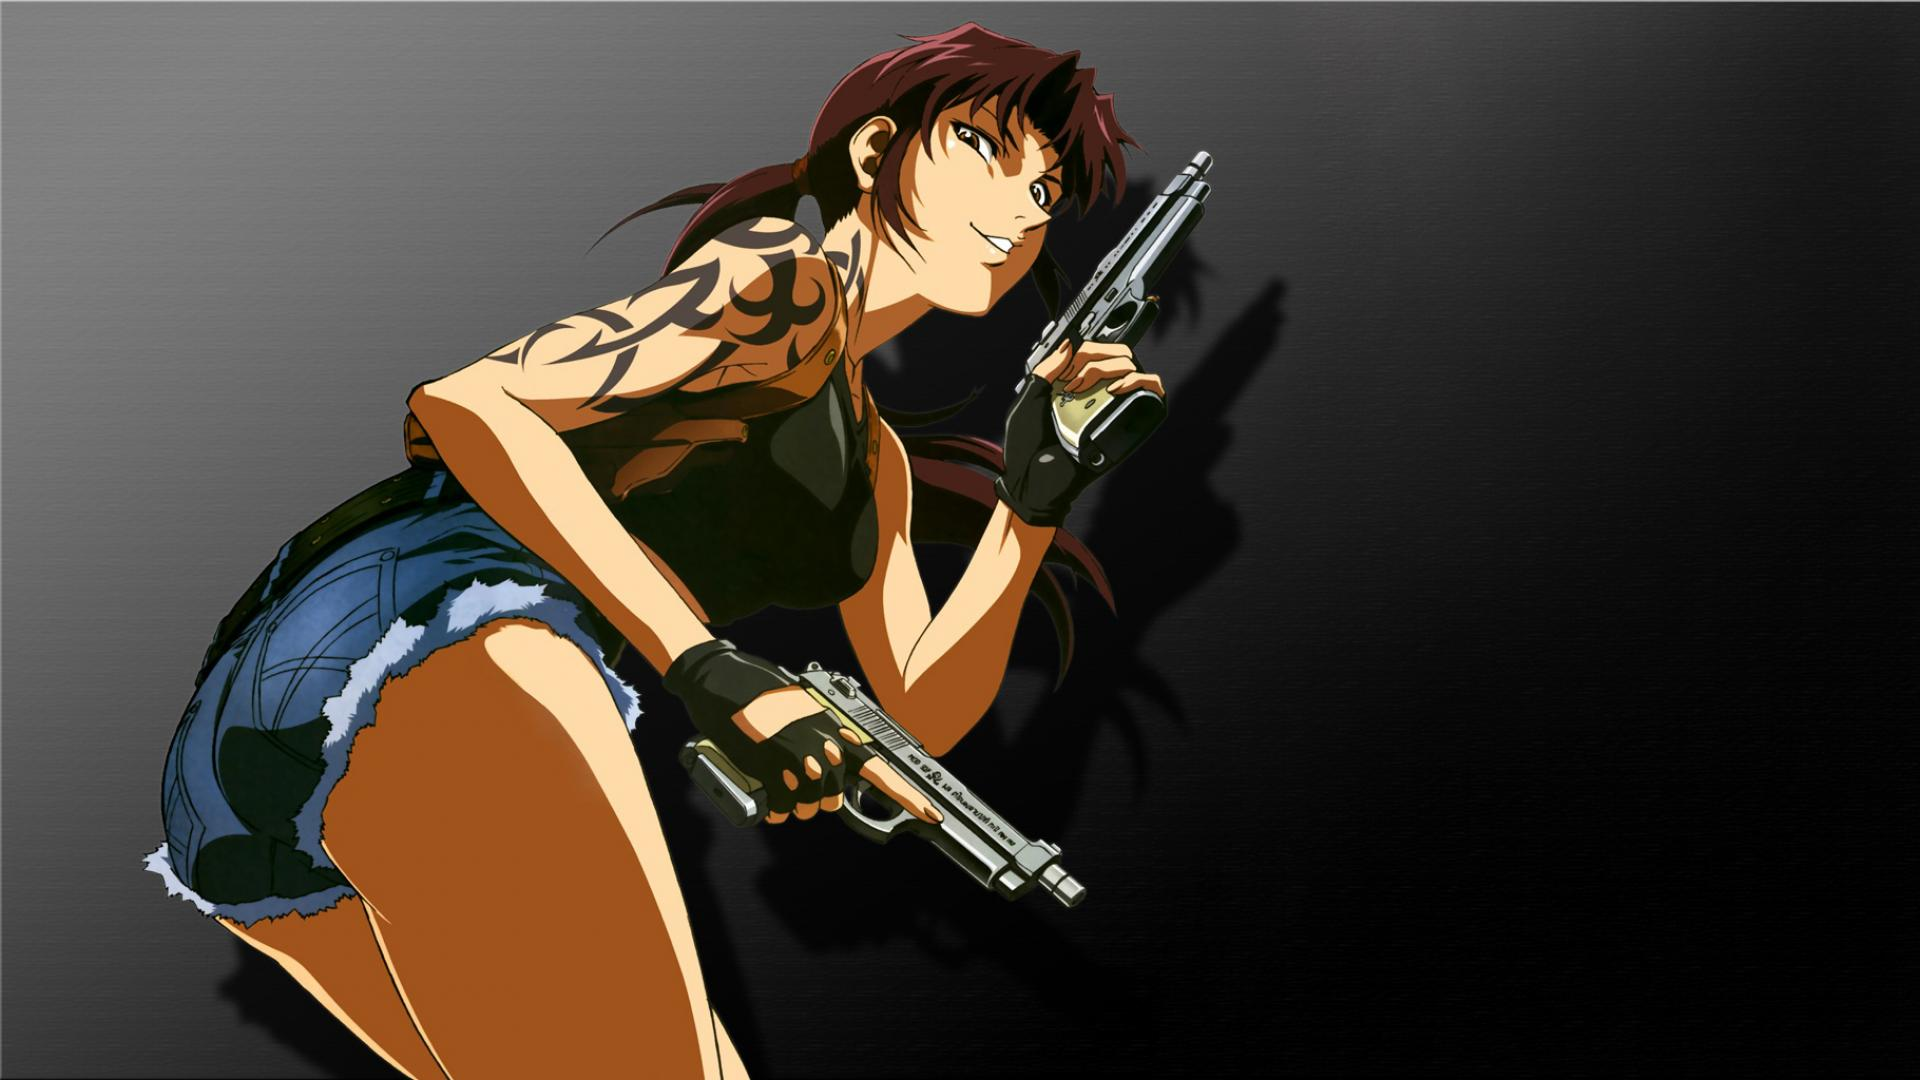 Free Download Black Lagoon Revy Hd 169 1280x720 1366x768 1600x900